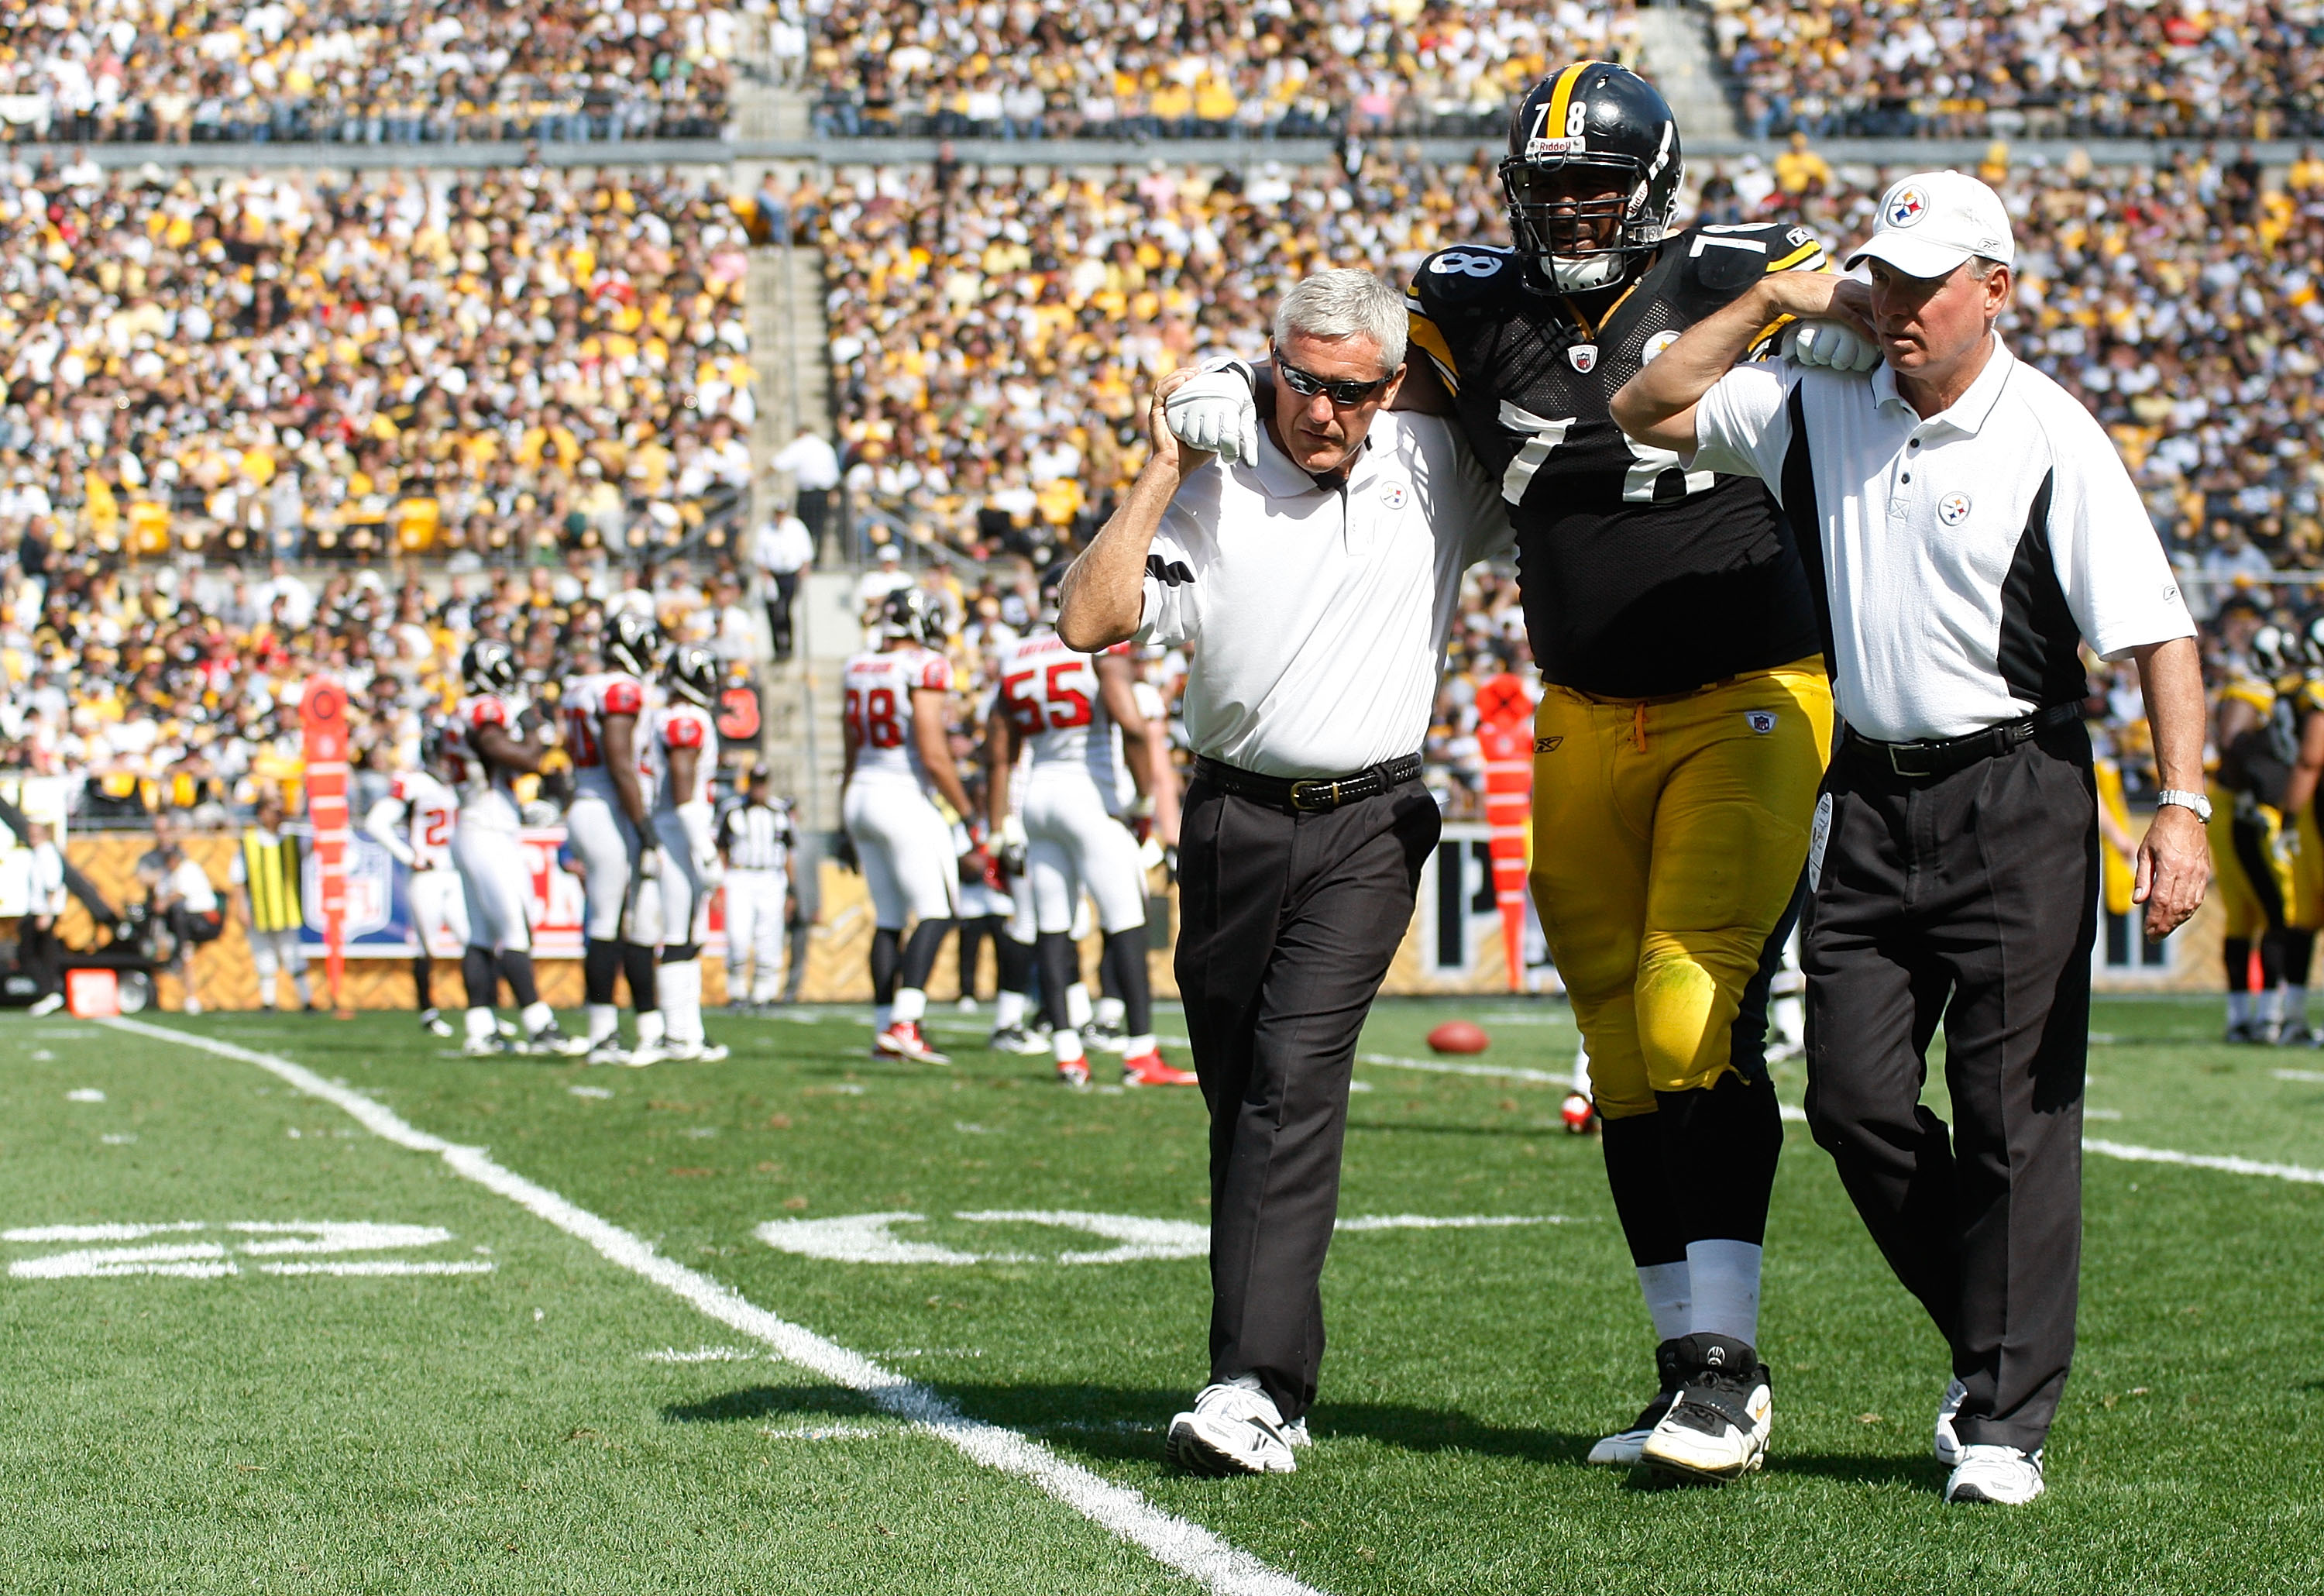 PITTSBURGH - SEPTEMBER 12:  Max Starks #78 of the Pittsburgh Steelers is helped off of the field after getting injured against the Atlanta Falcons during the NFL season opener game on September 12, 2010 at Heinz Field in Pittsburgh, Pennsylvania.  (Photo